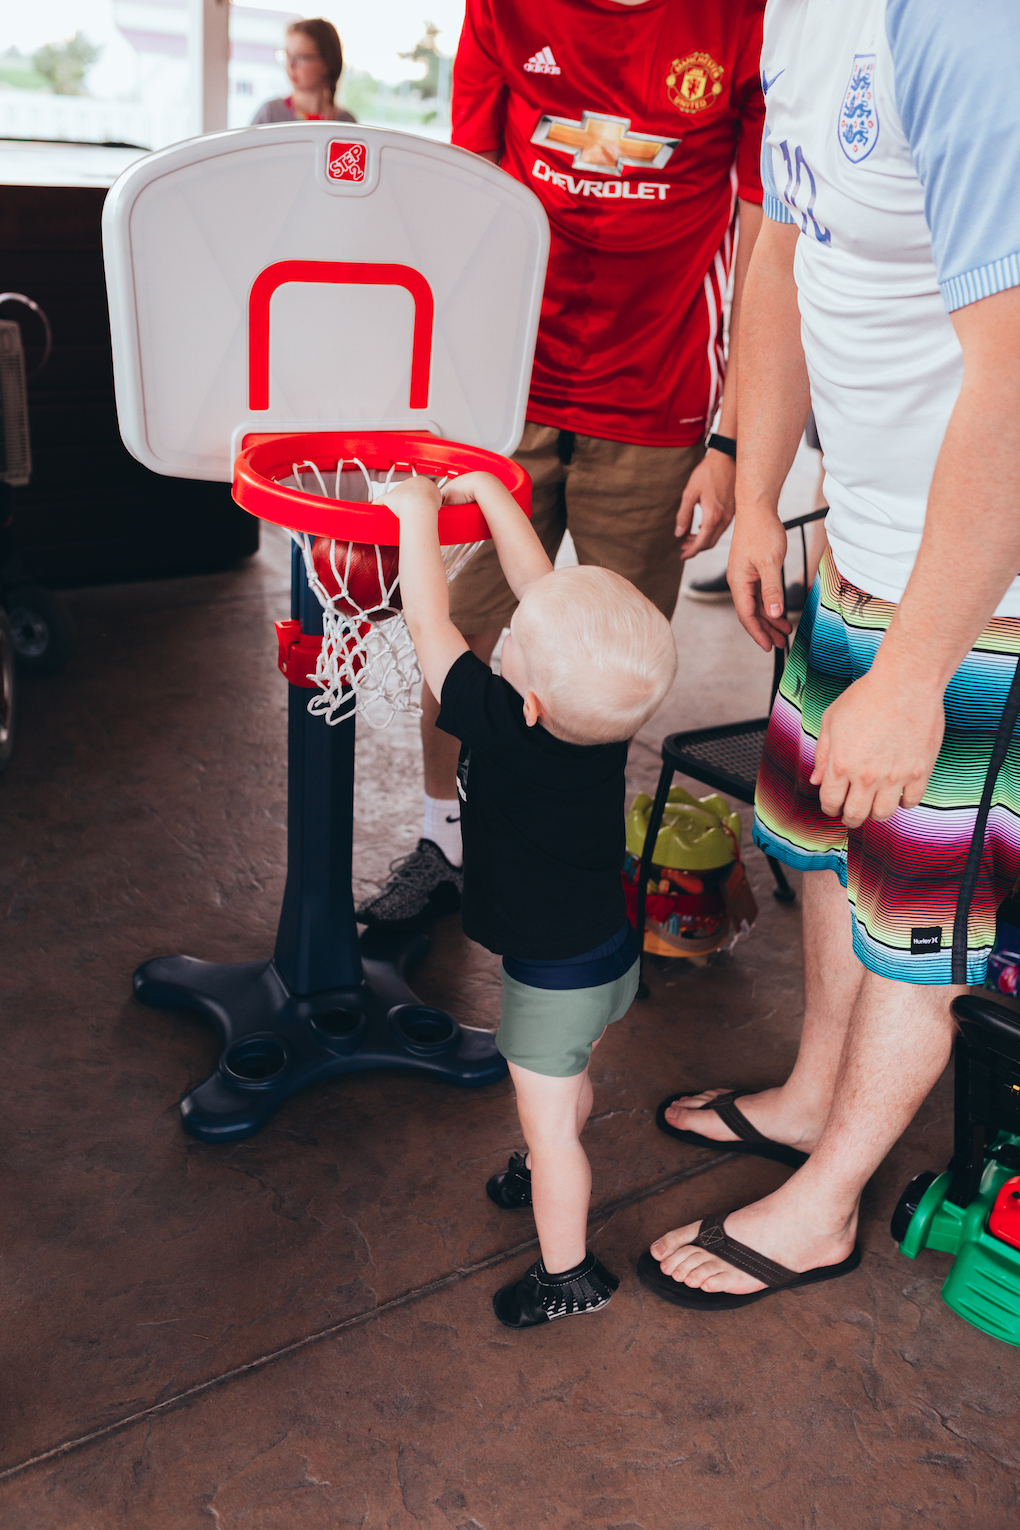 KINGS HAPPY UN-BIRTHDAY - KIDS BALL PARTY by Utah blogger Dani Marie - Kids Ball Birthday Party